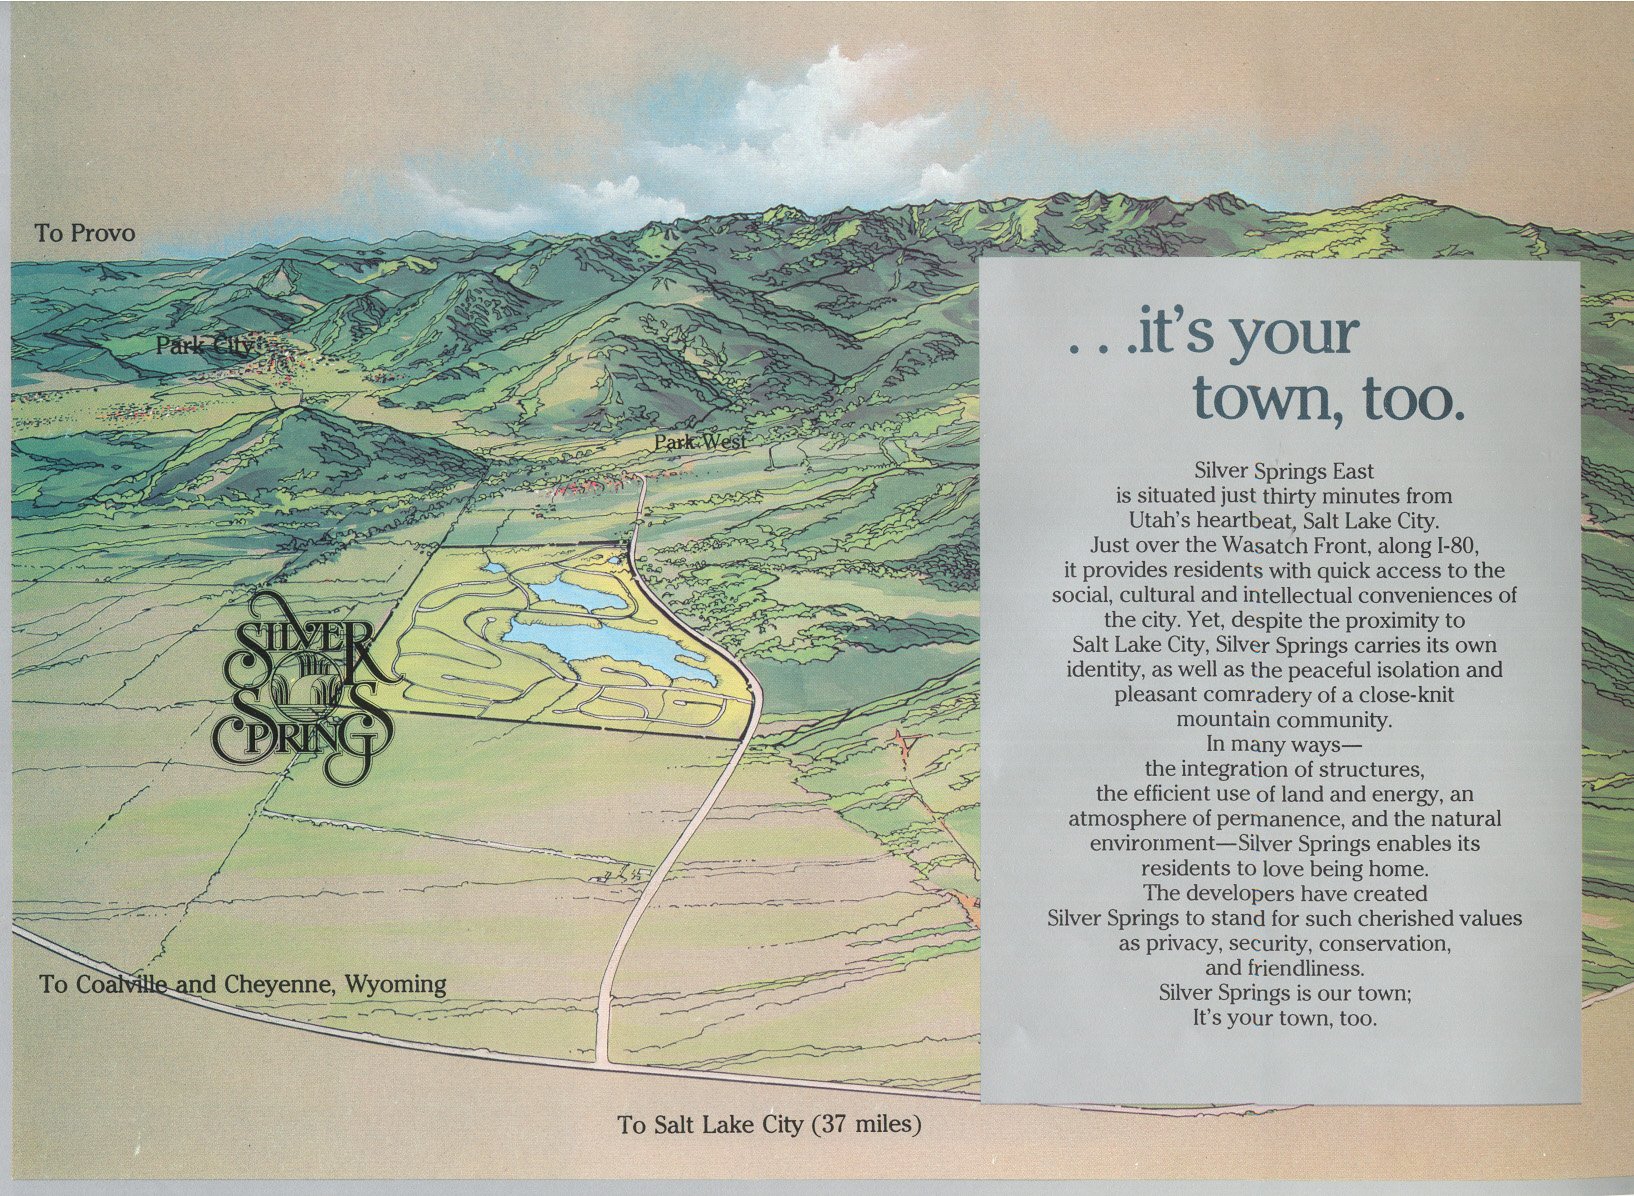 it's-your-town-too